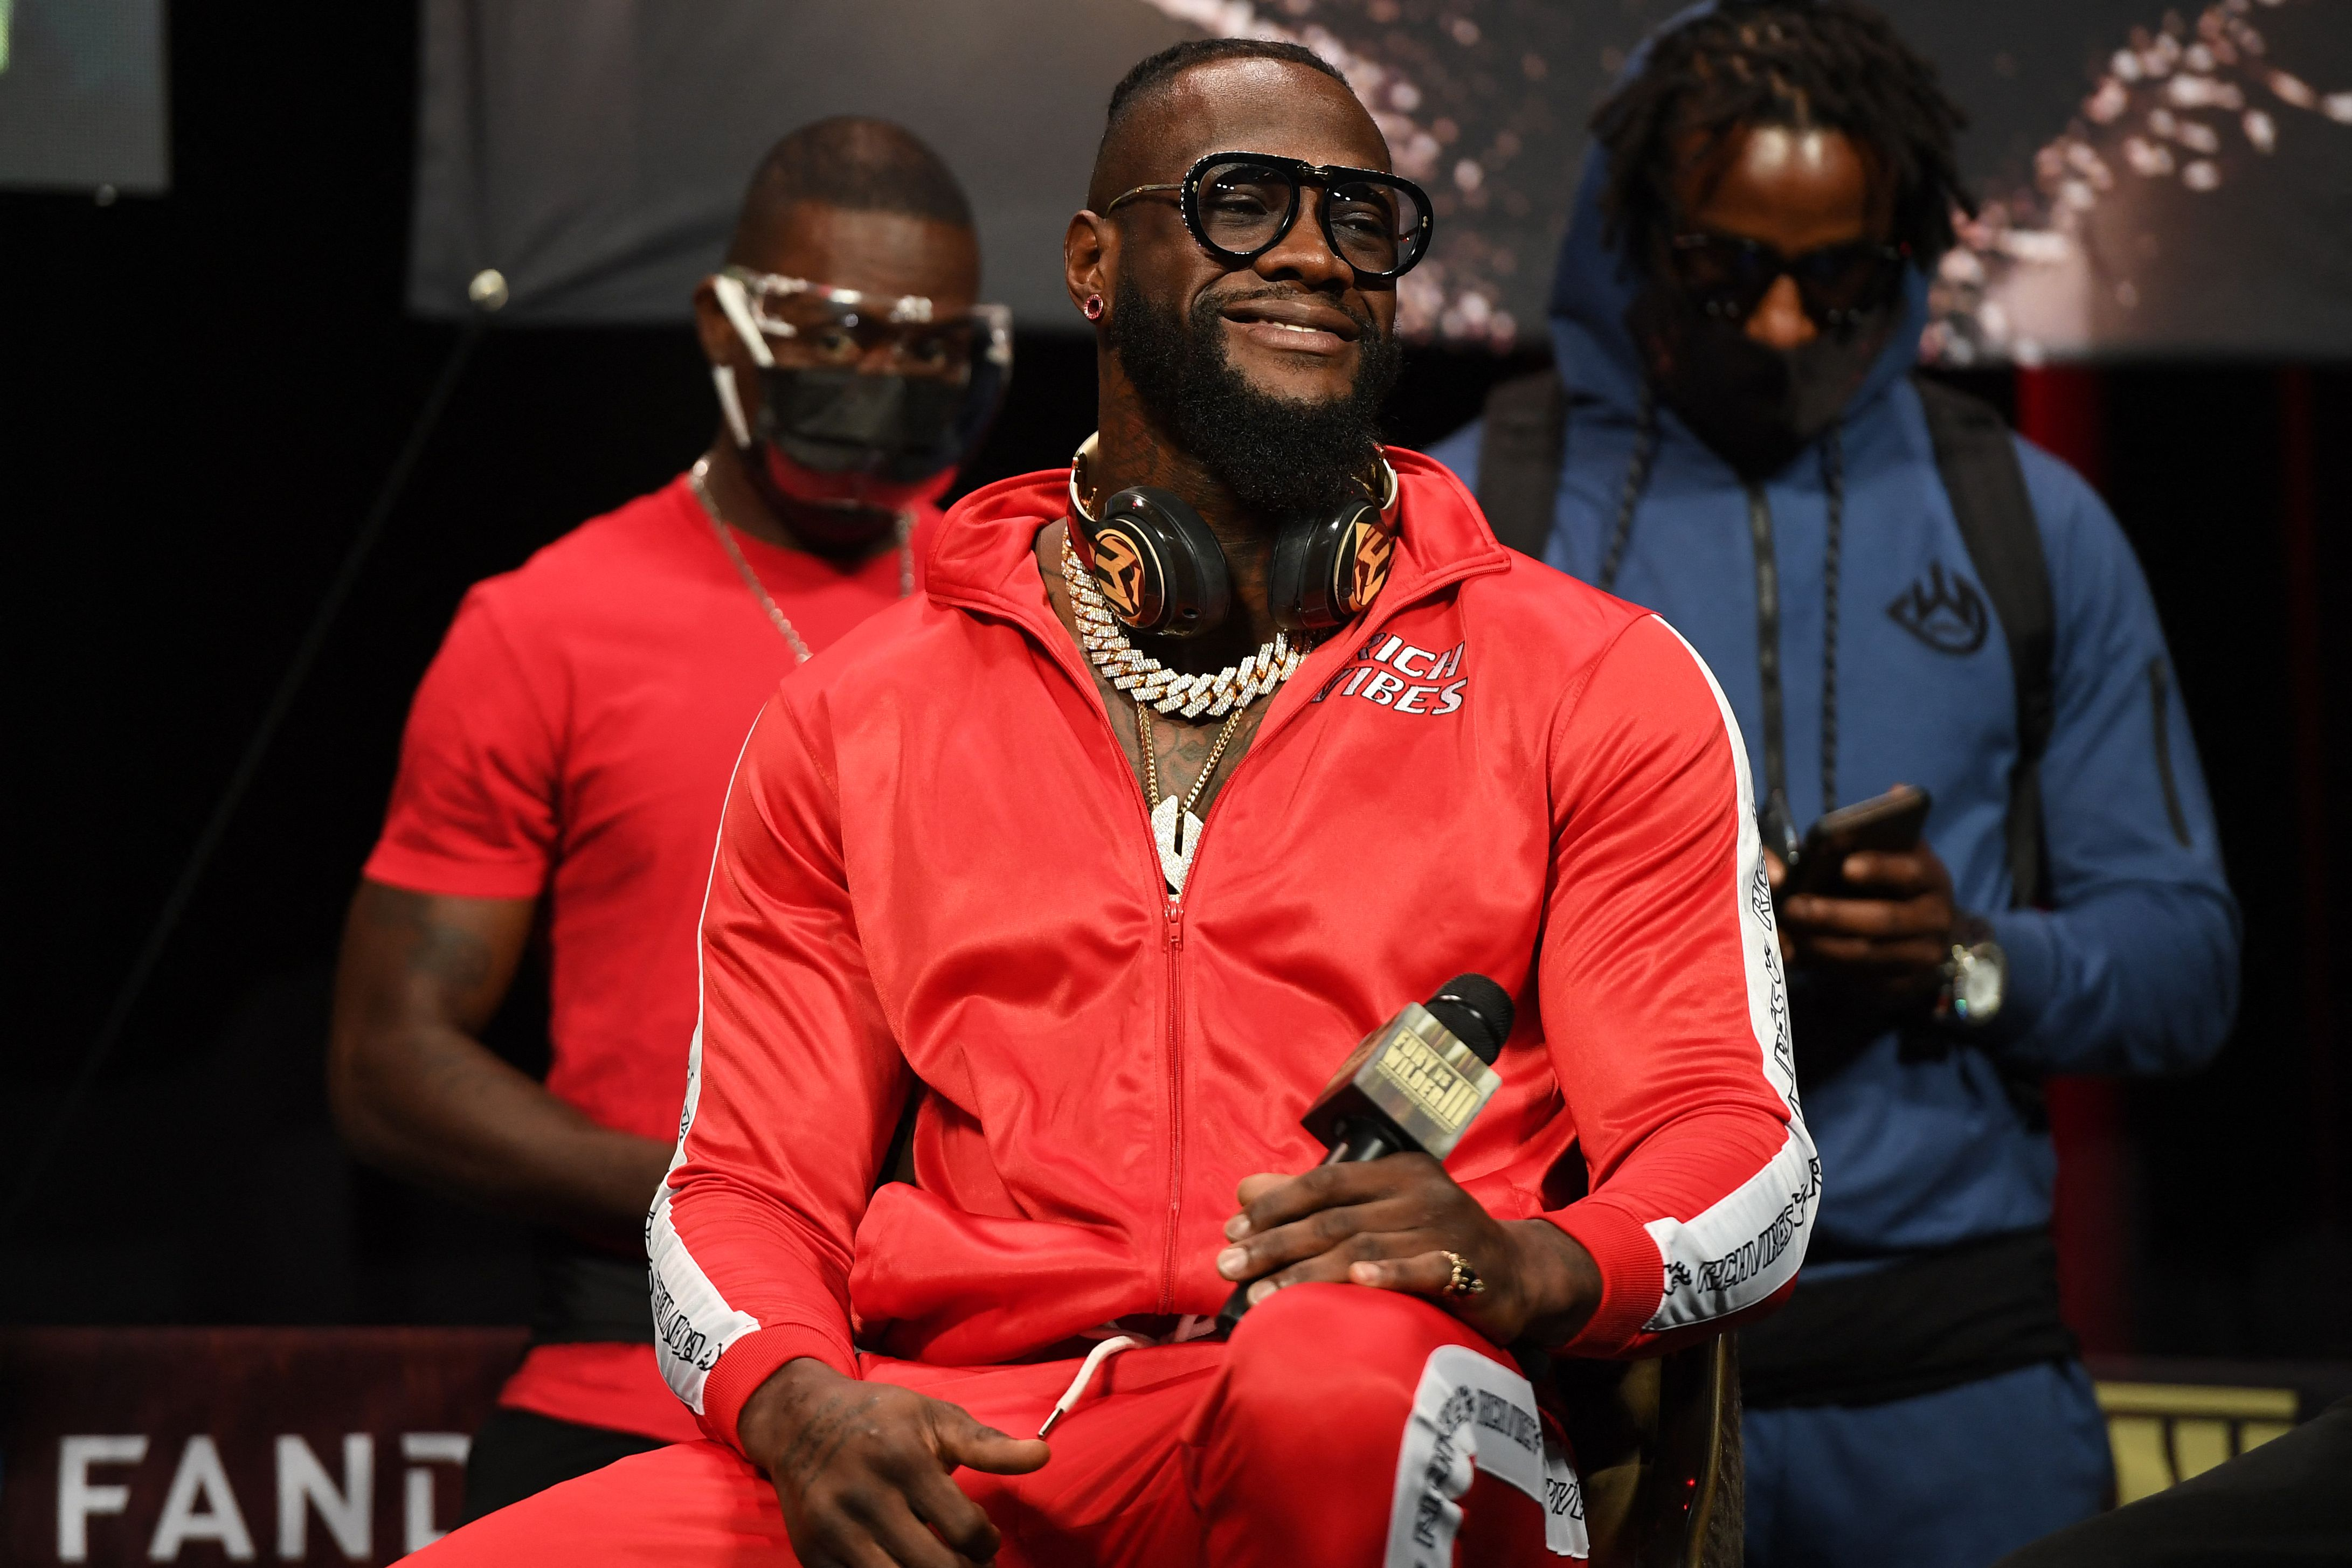 Wilder stood by his cheating allegations